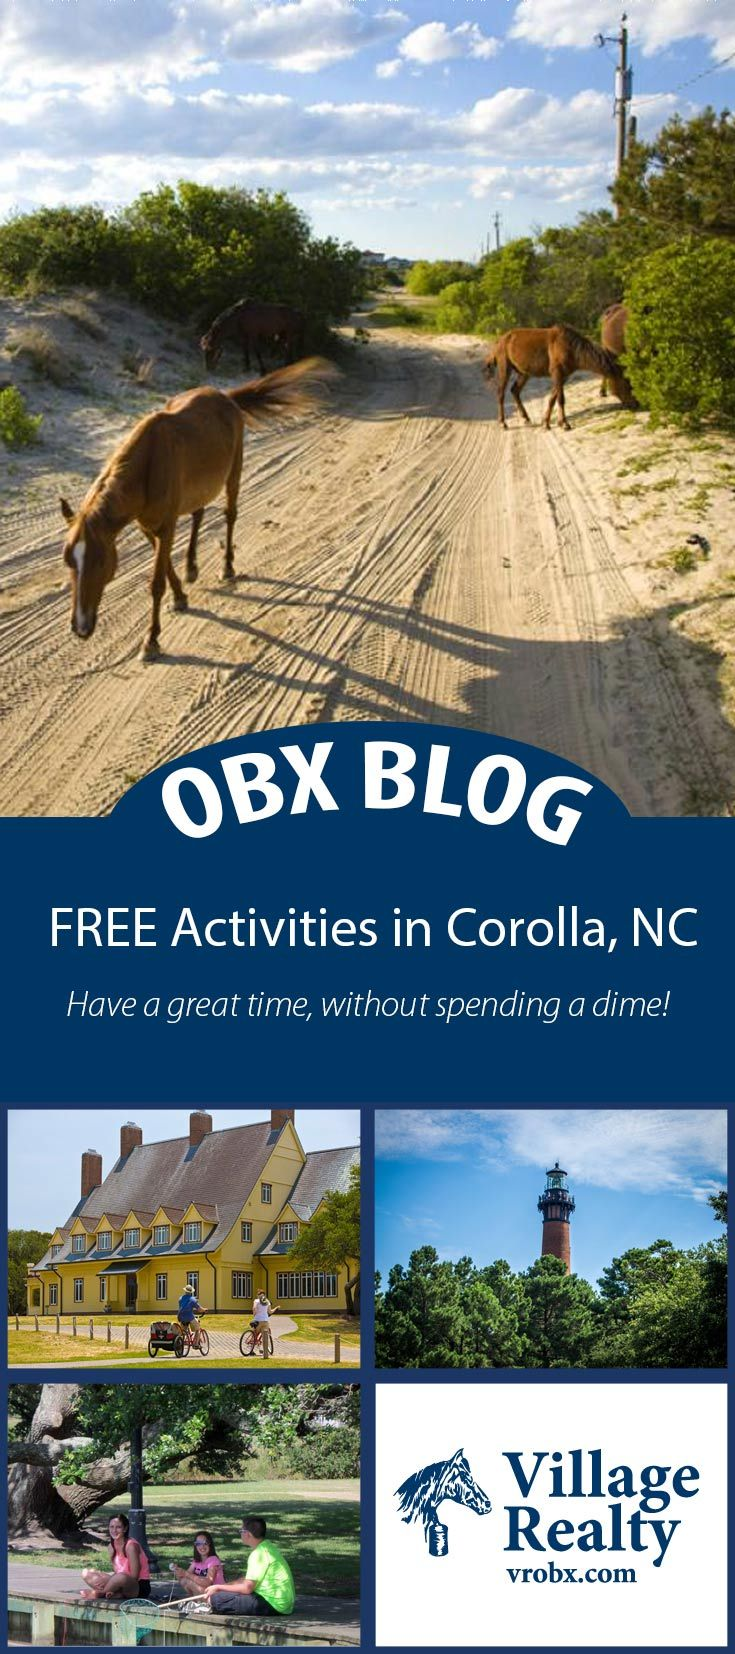 Try these FREE activities in Corolla, NC! Make your Outer Banks vacation complete.  #OBX #Corolla #Thingstodo #FamilyVacation #Vacation #Activities #OuterBanks